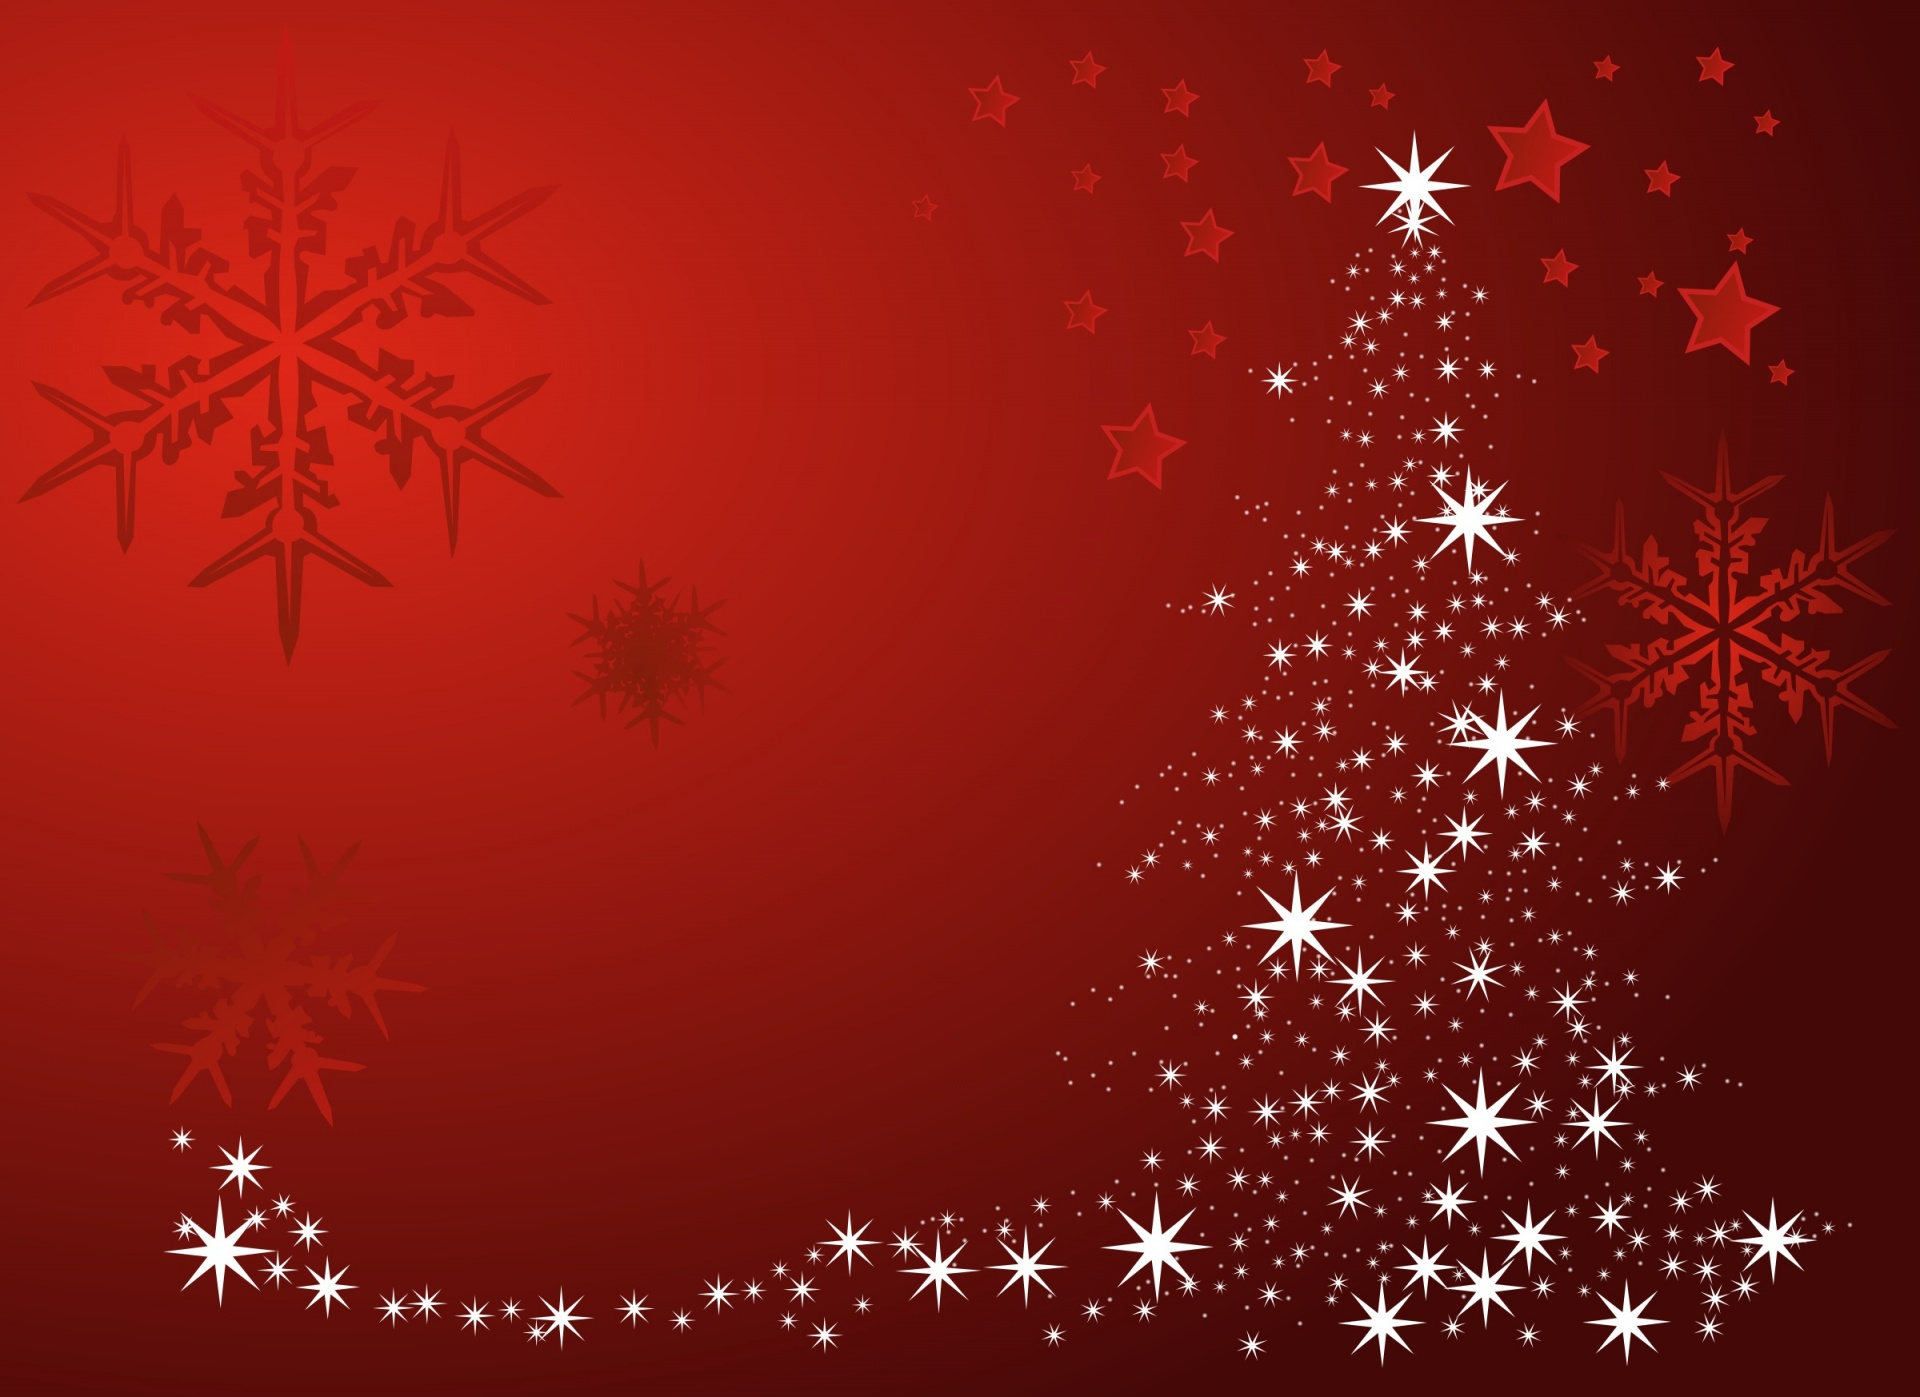 Holidaychristmasbackgroundwallpaperpublic Domain Free